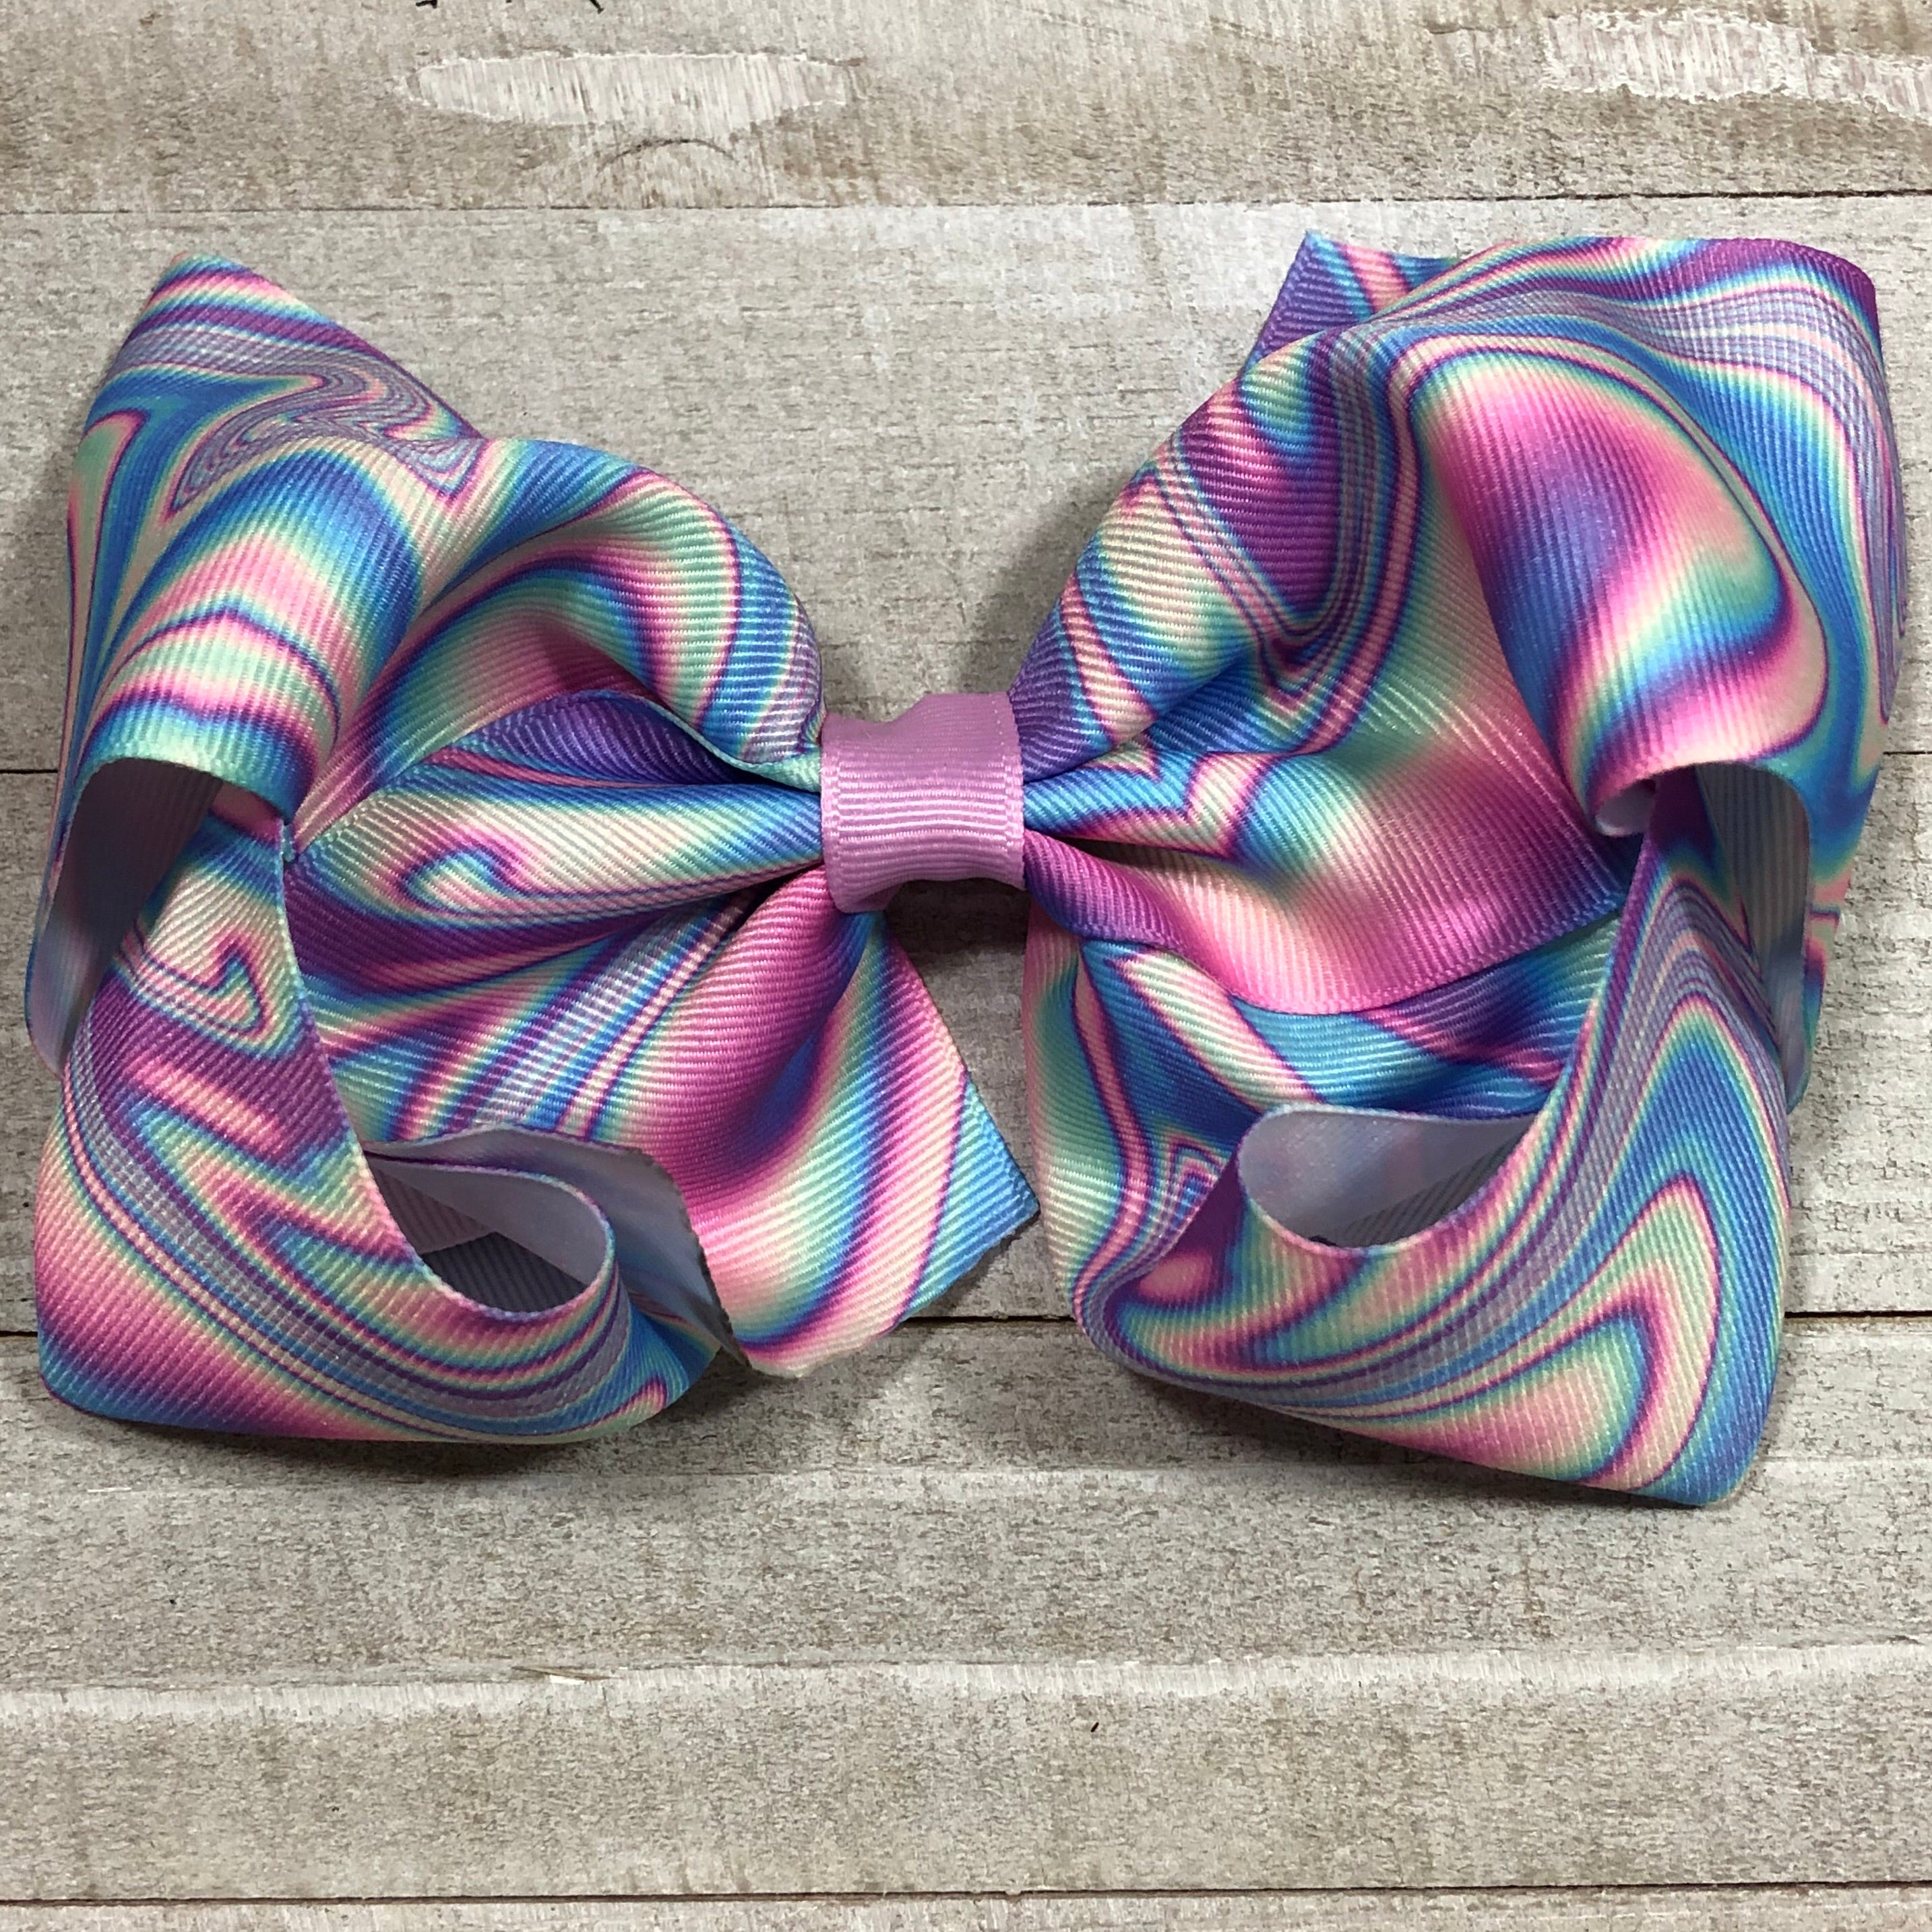 Gigantic Handmade Hair Bow - Marbled Paint - Cutie Bowtutie